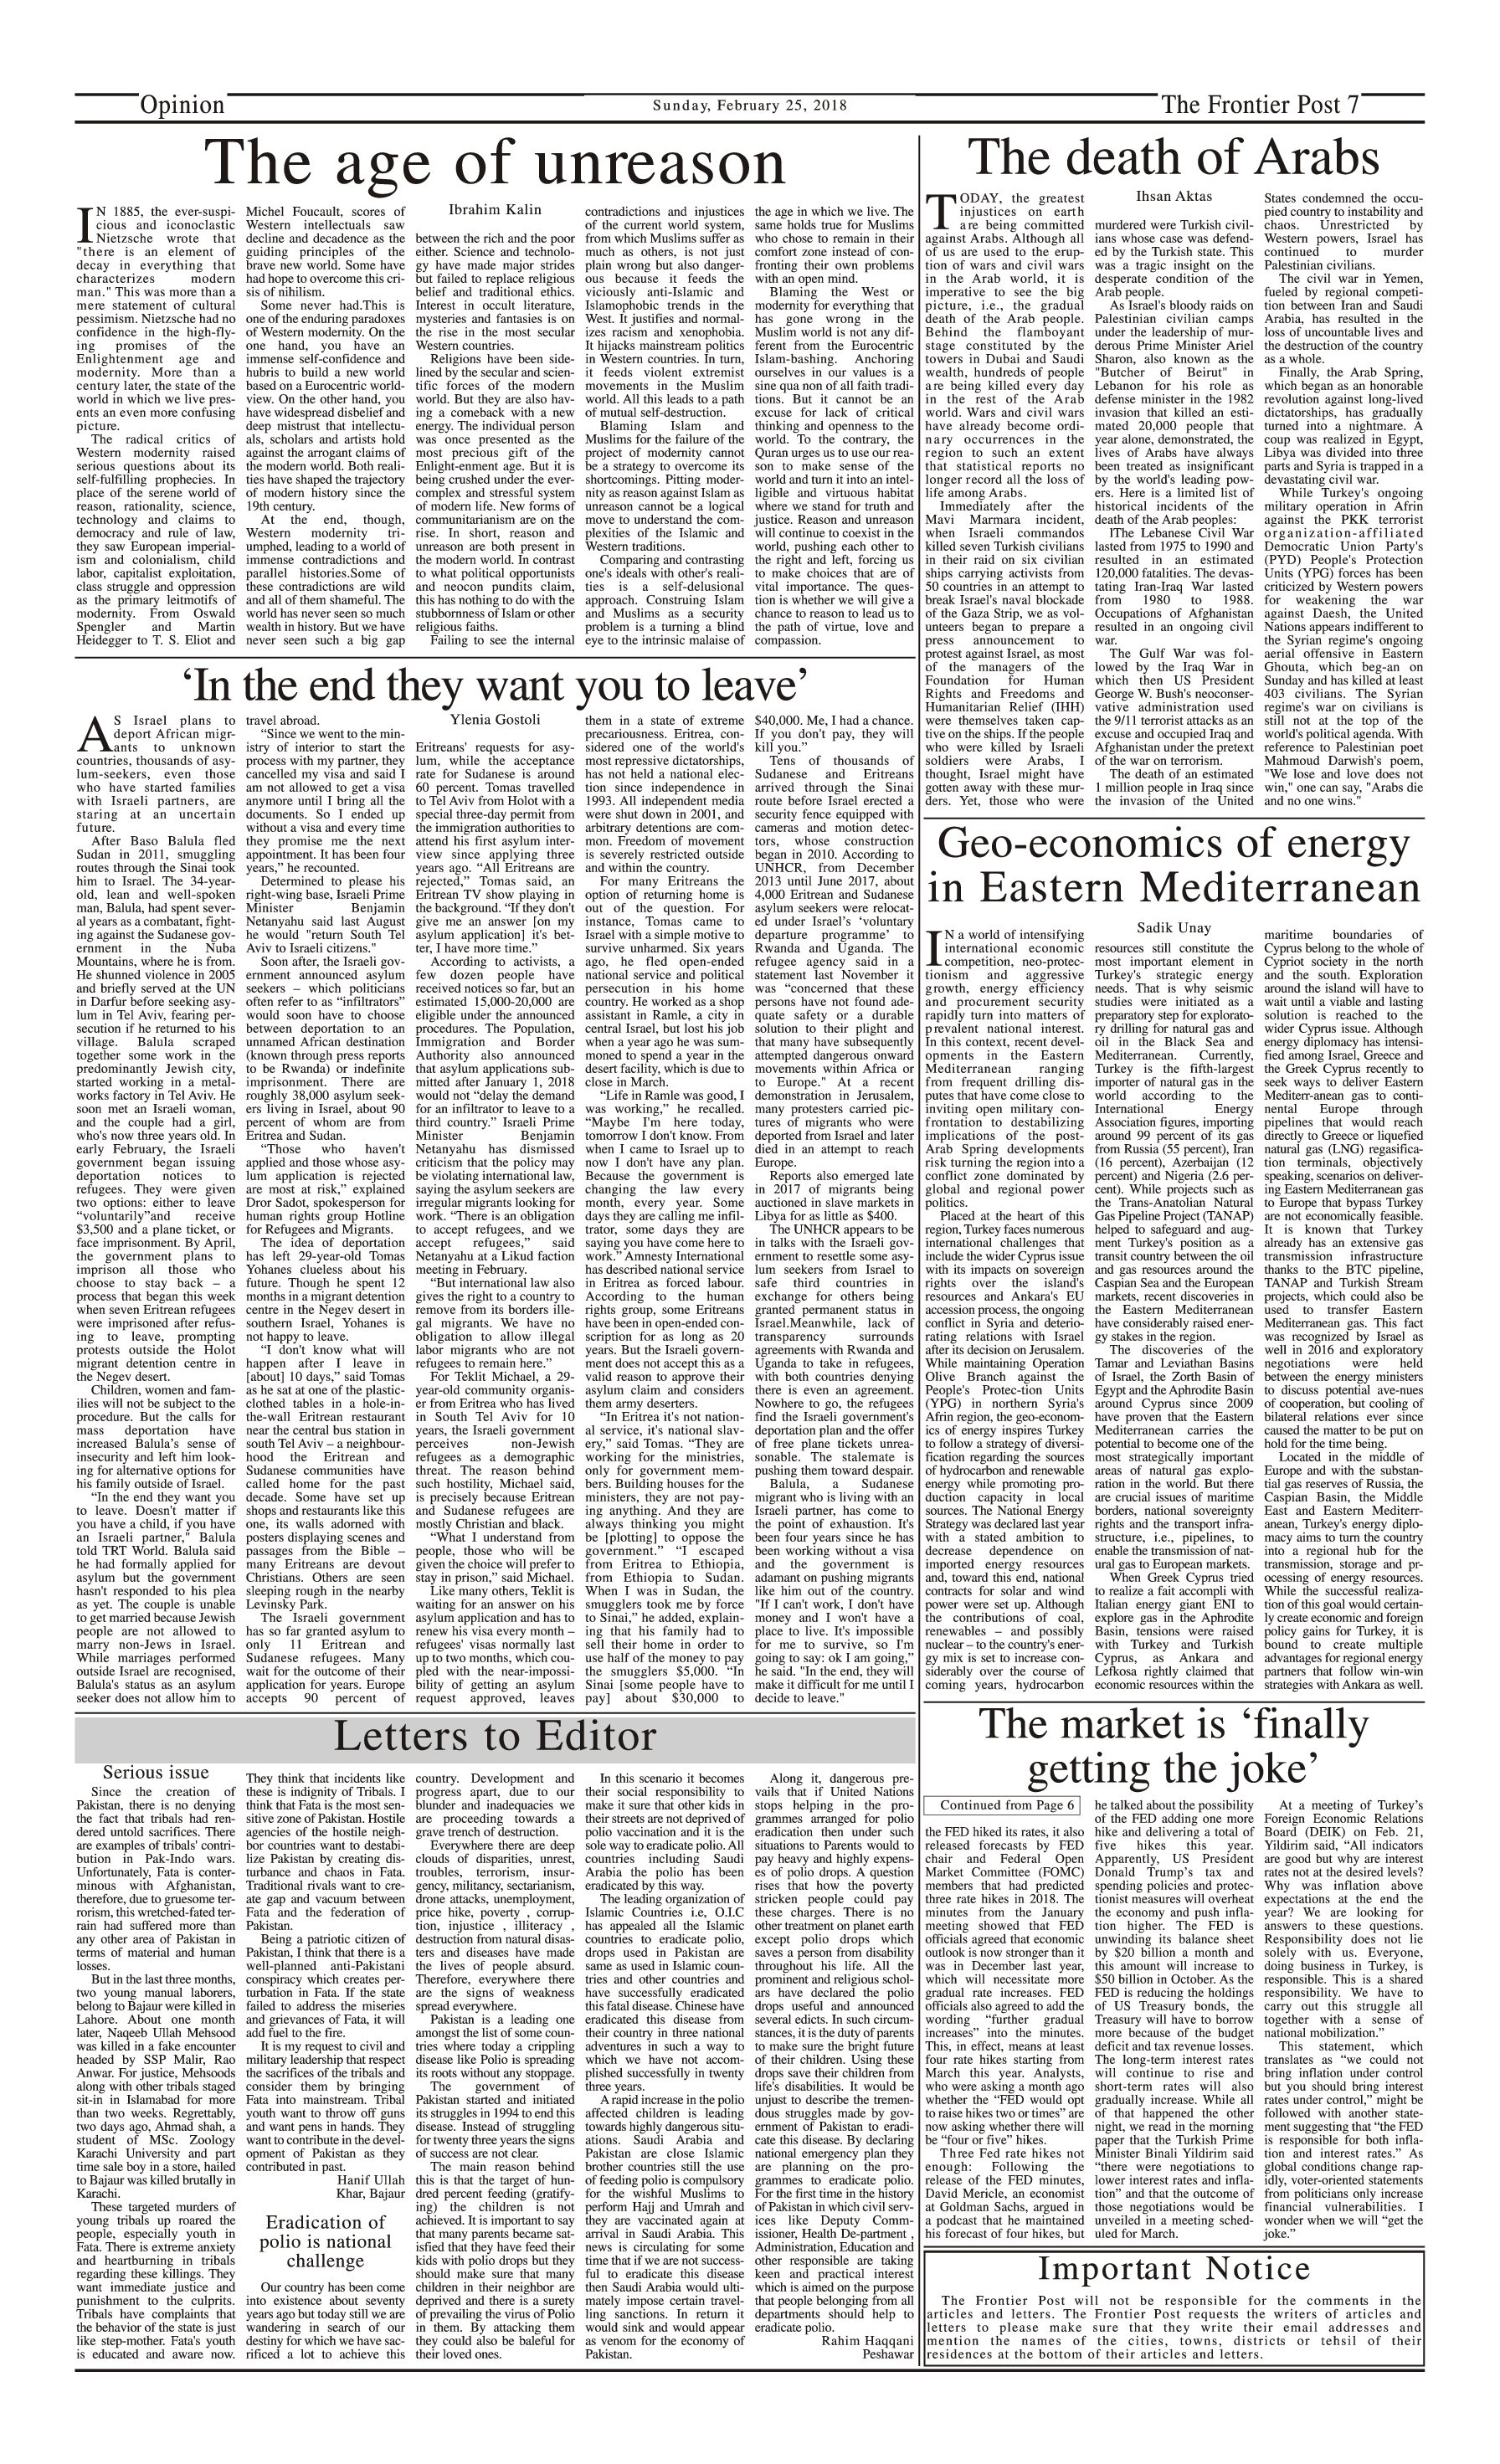 Opinion Page 25-2